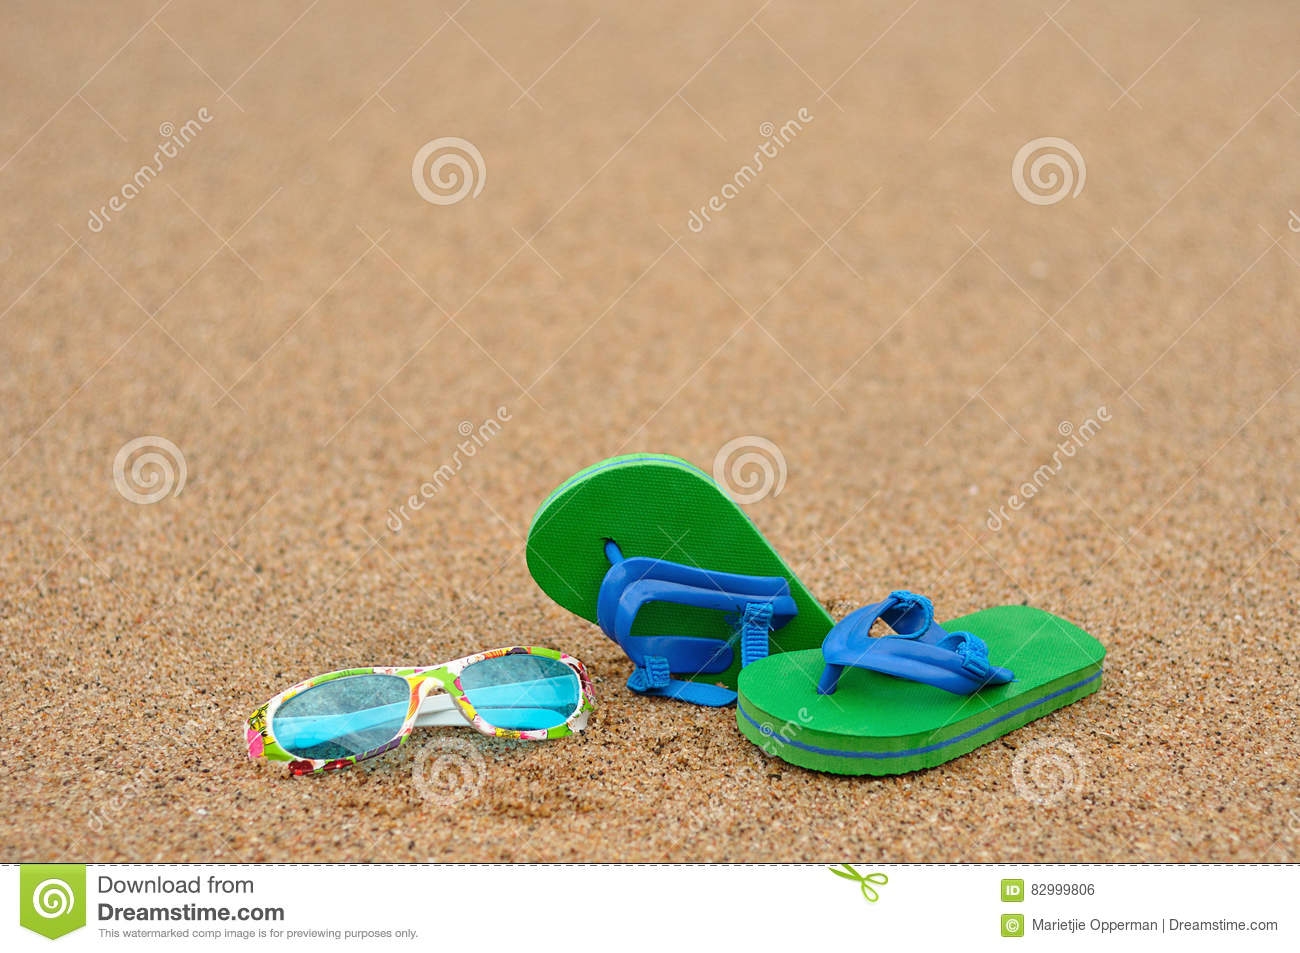 A pair of green and blue flip flops with colorful sunglasses